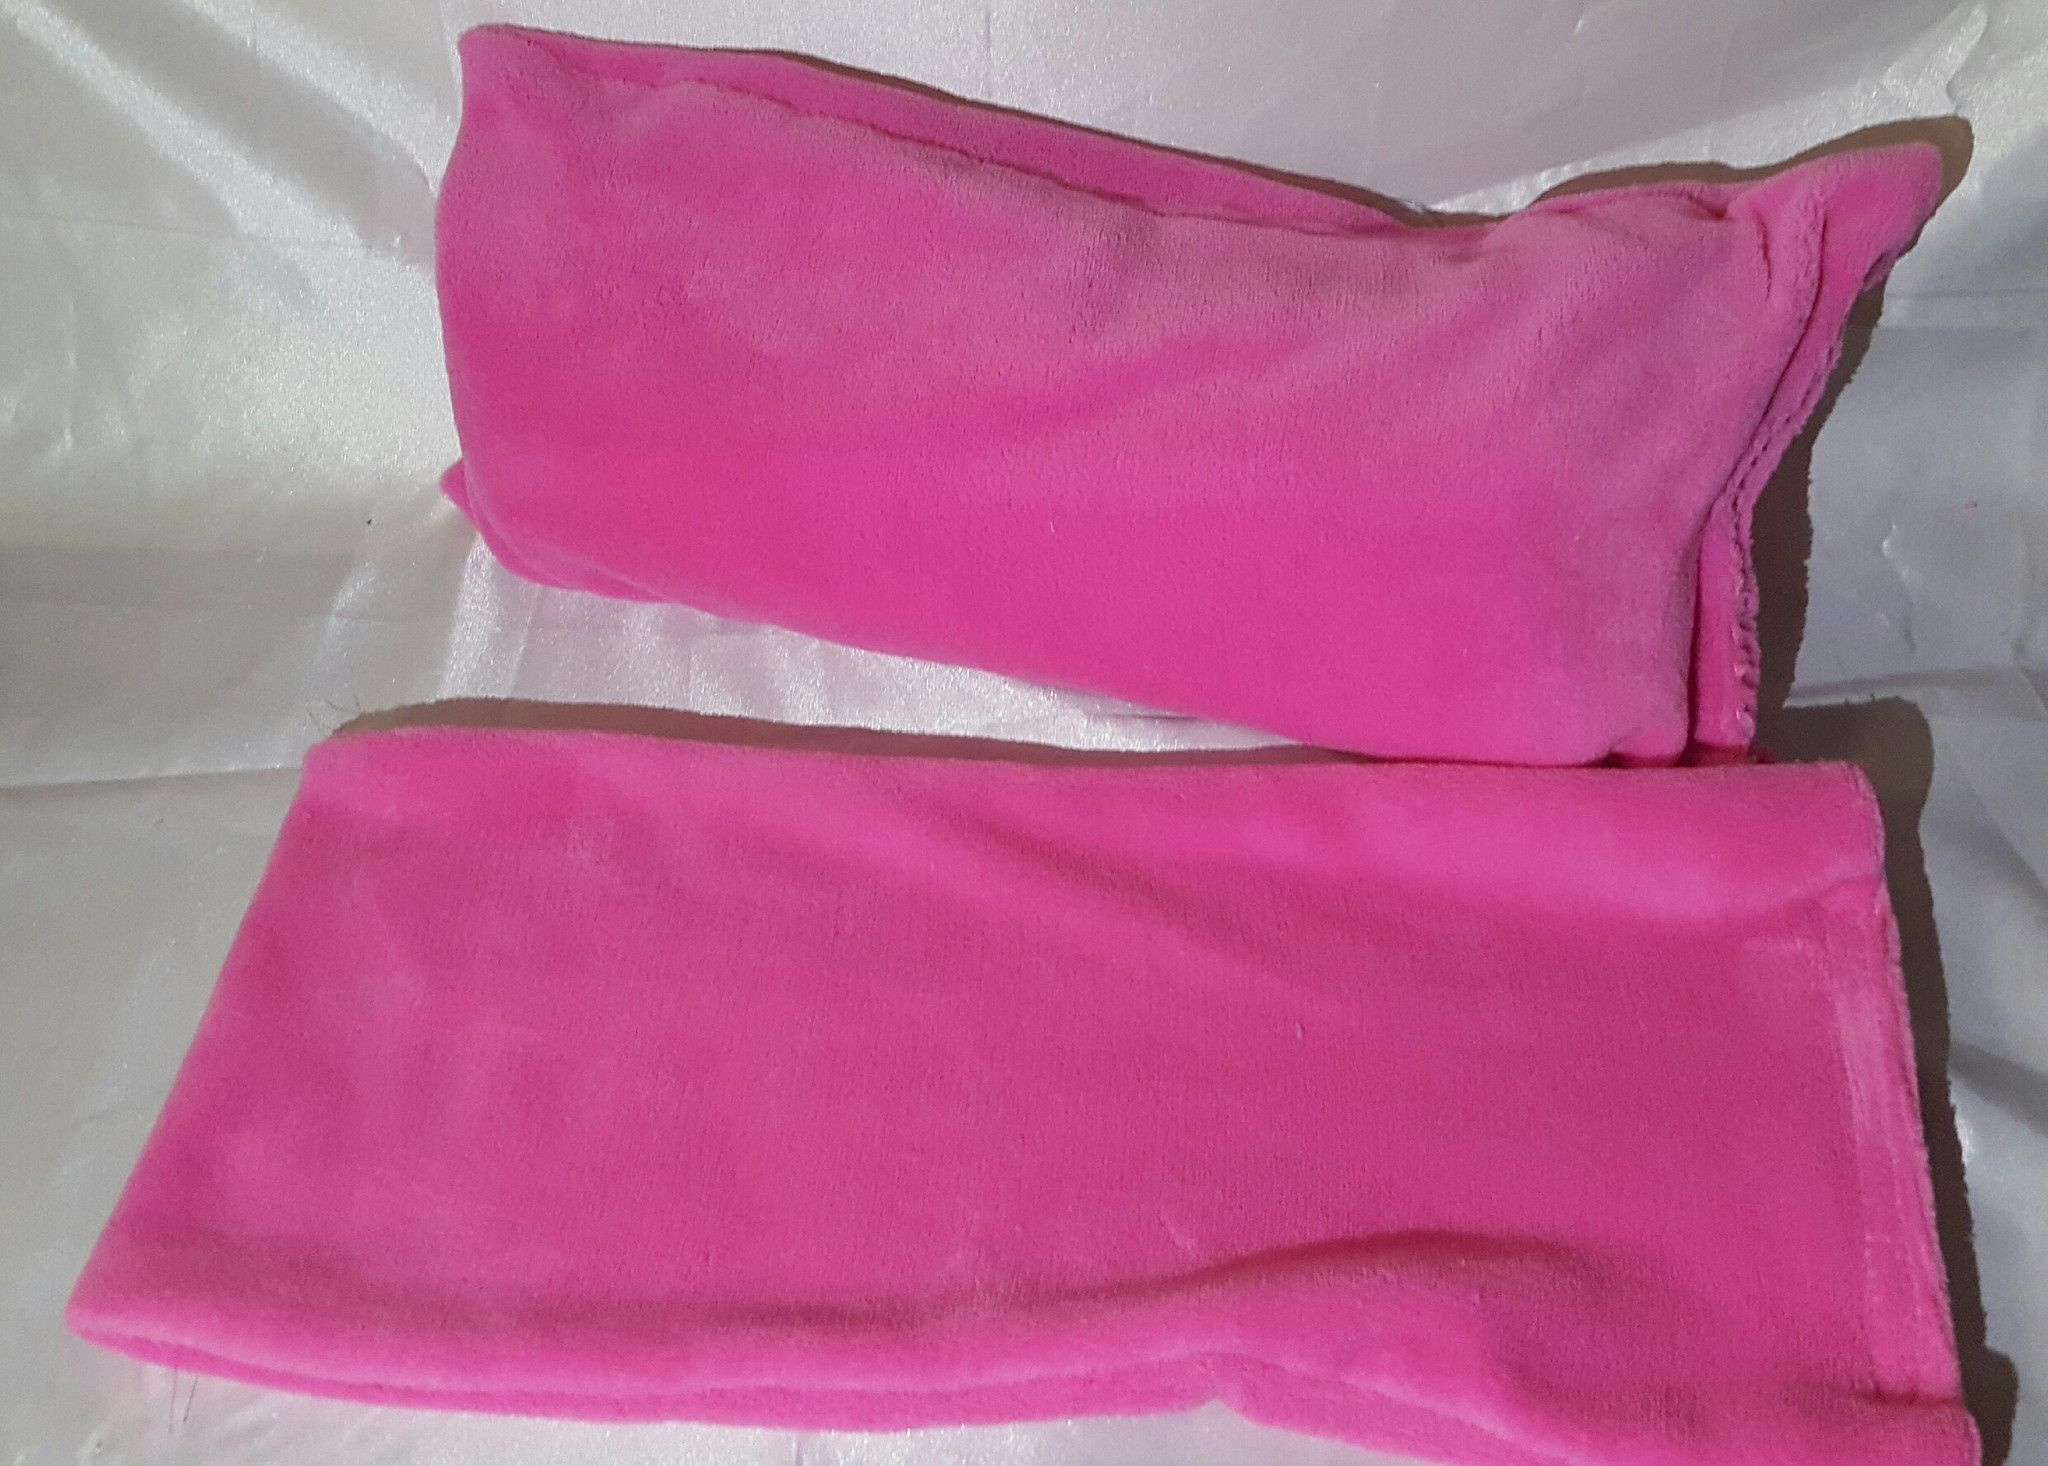 Handmade bath pillow case (only) no internal towel with suction cups ...